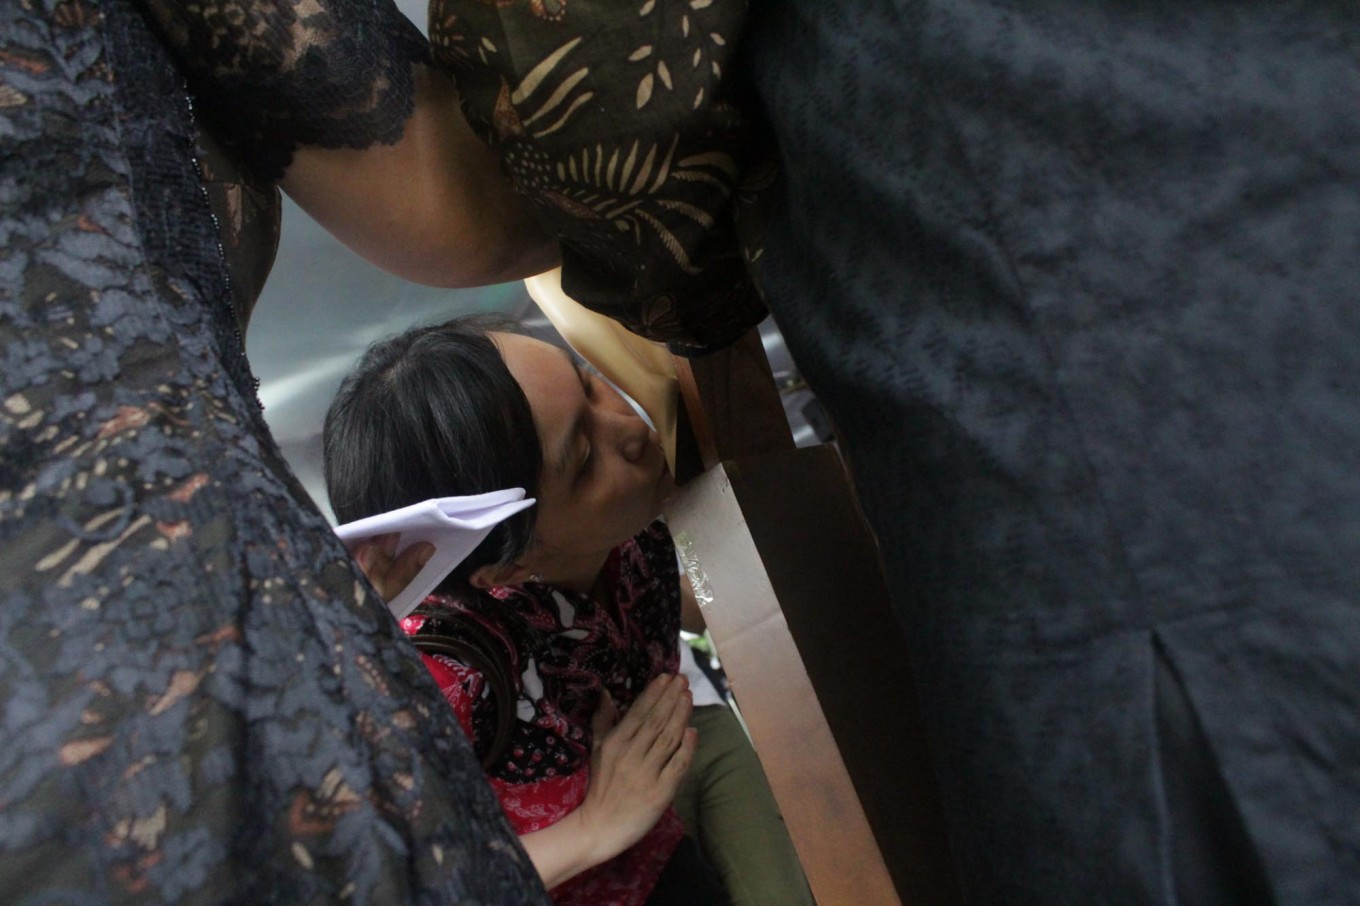 A woman kisses the foot of a crucified Jesus statue on Good Friday in Jakarta Cathedral. The event that commemorates the death of Christ is a part of the Holy Triduum, beginning with Maundy Thursday and ending on Easter Sunday. JP/Bagas Rahadian